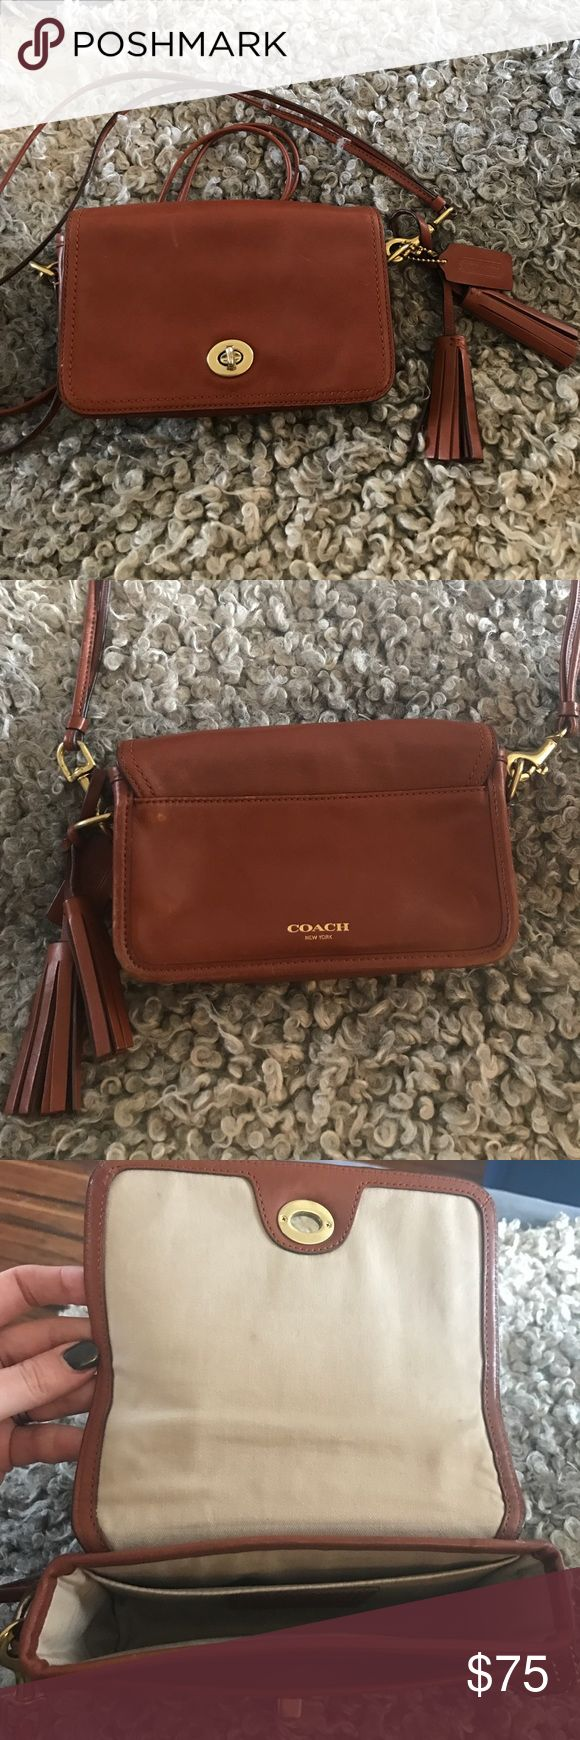 Coach Legacy Penny Bag Beautiful little bag. A little wear and tear on the  hardware and minor scuffs on the leather. Cute leather tassels. Double the straps to wear it short, remove the straps to wear as a clutch. Very versatile. It's in overall good condition Coach Bags Crossbody Bags